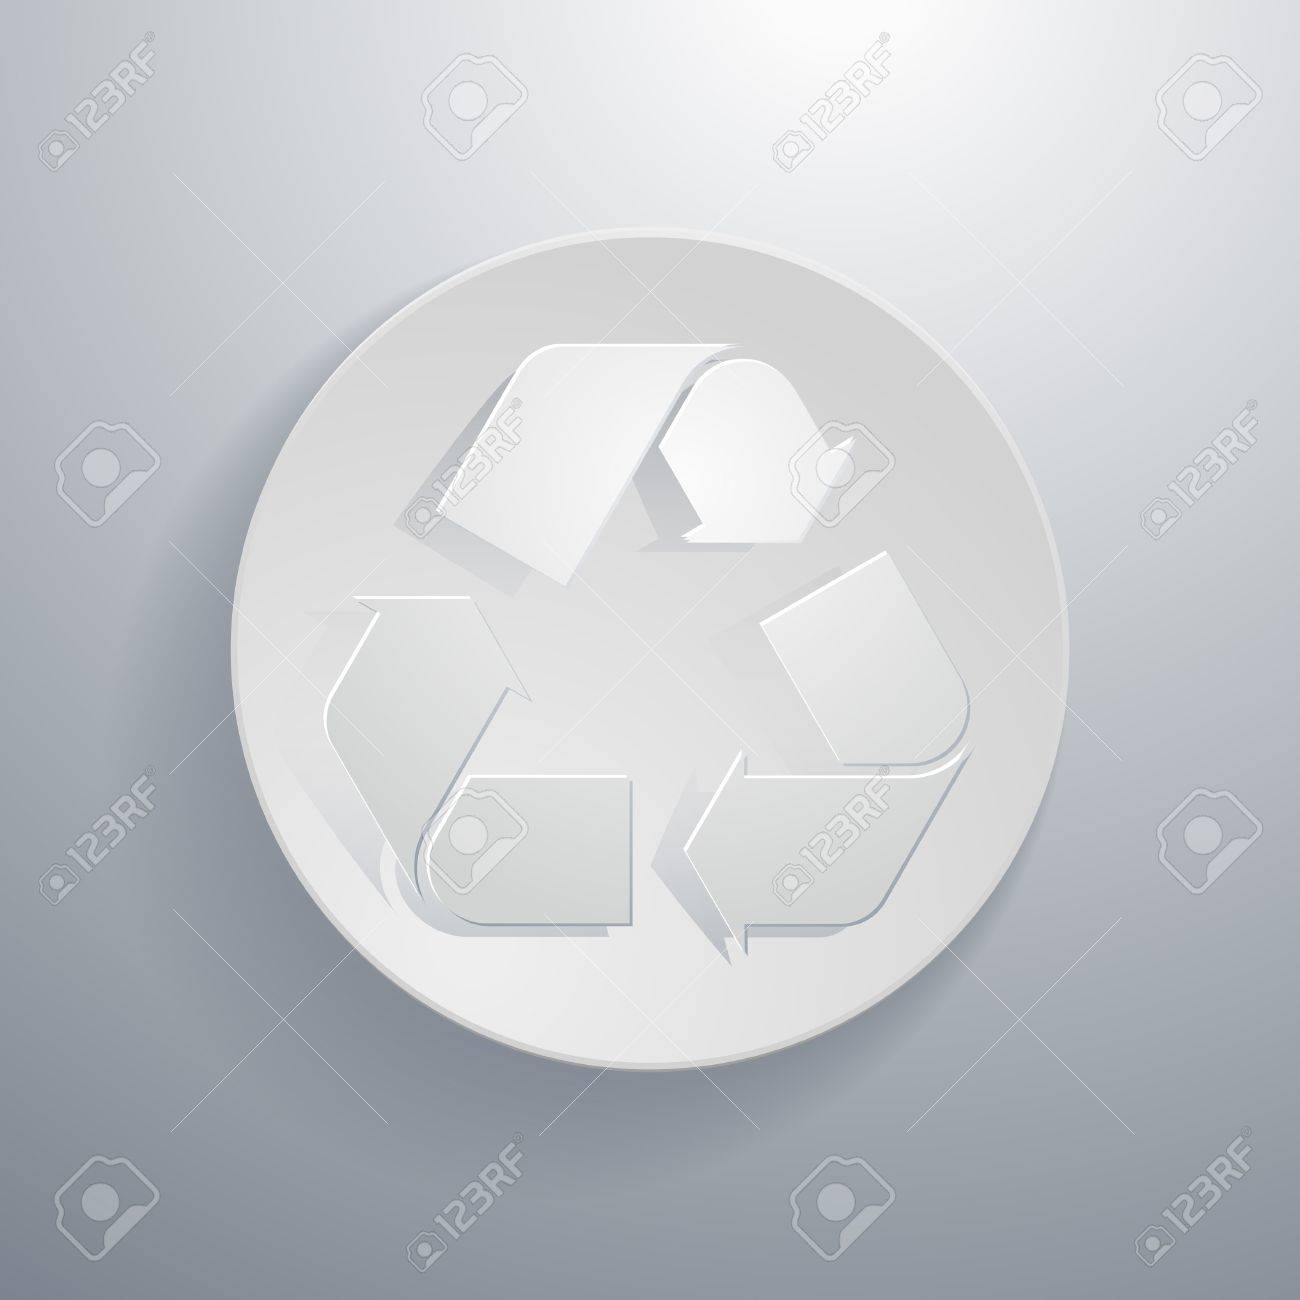 simple paper-cut style, circular icon,recycle sign Stock Vector - 21080492